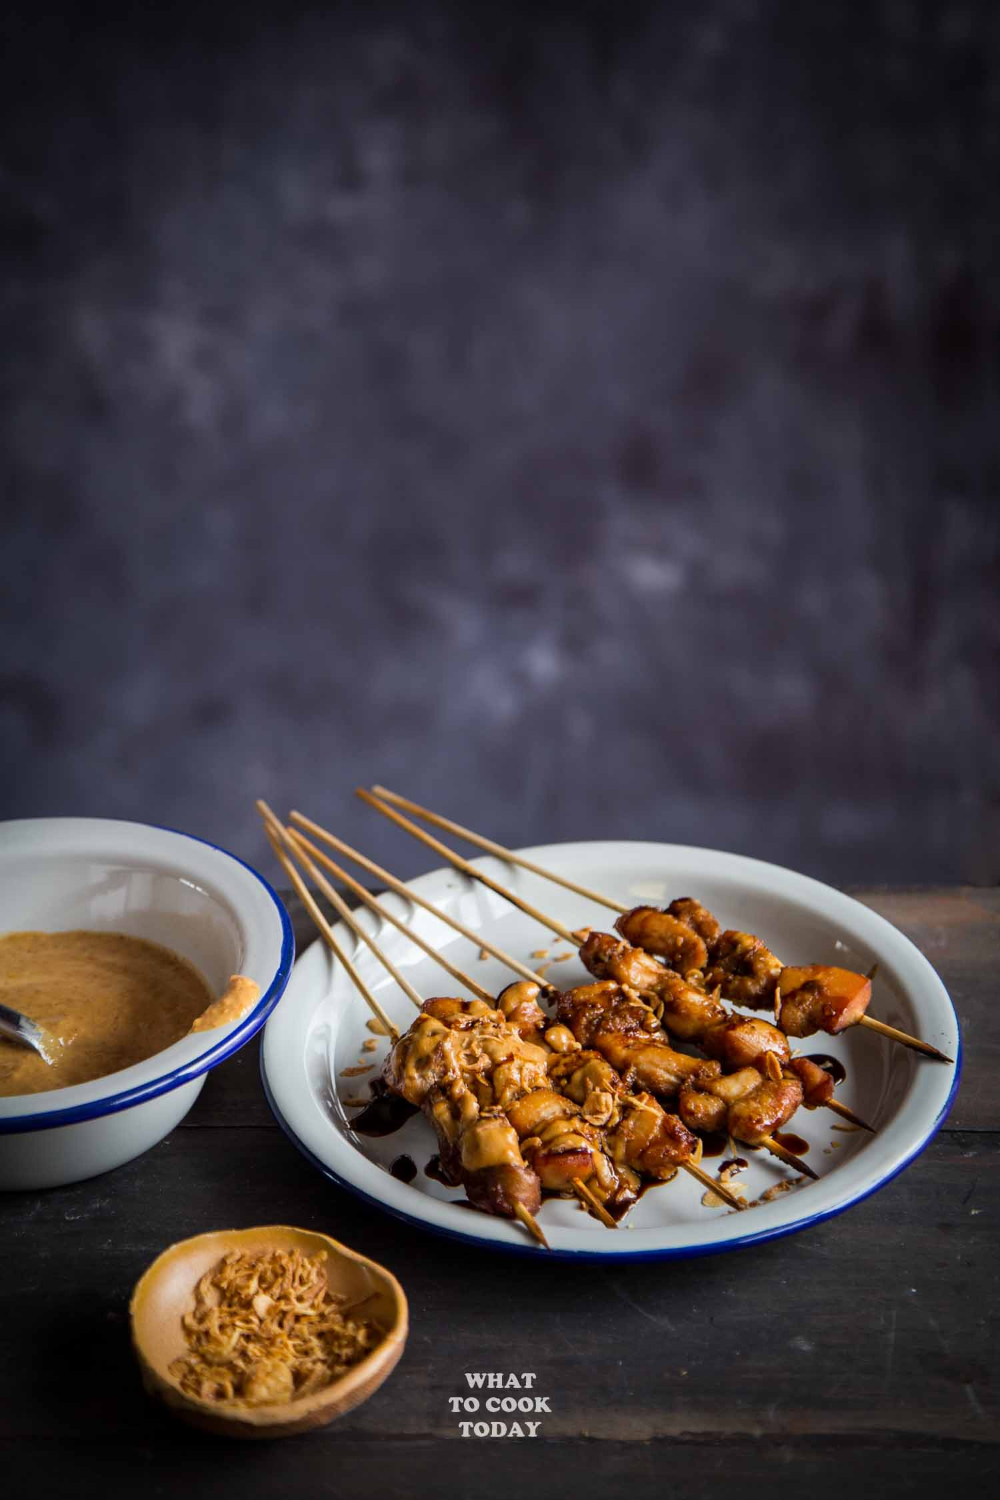 Sate Ayam Bumbu Kacang Chicken Satay With Peanut Sauce Sate Ayam Asian Food Appetizers Chicken Satay